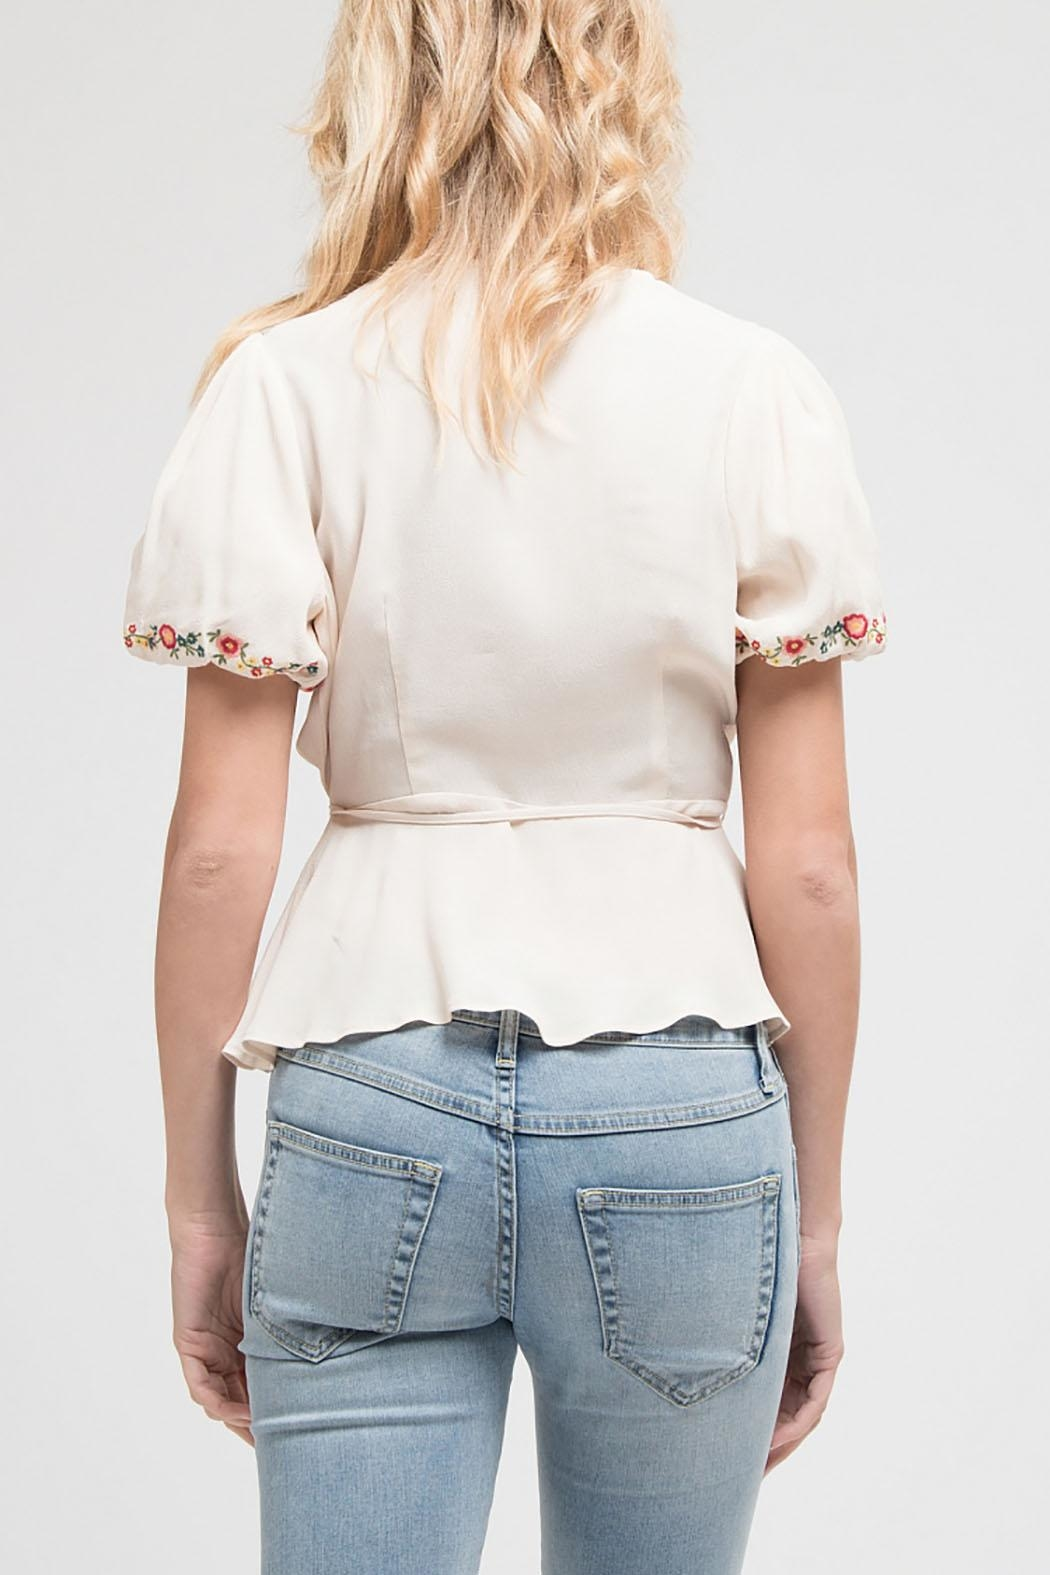 Blu Pepper Embroidered Woven Top - Back Cropped Image